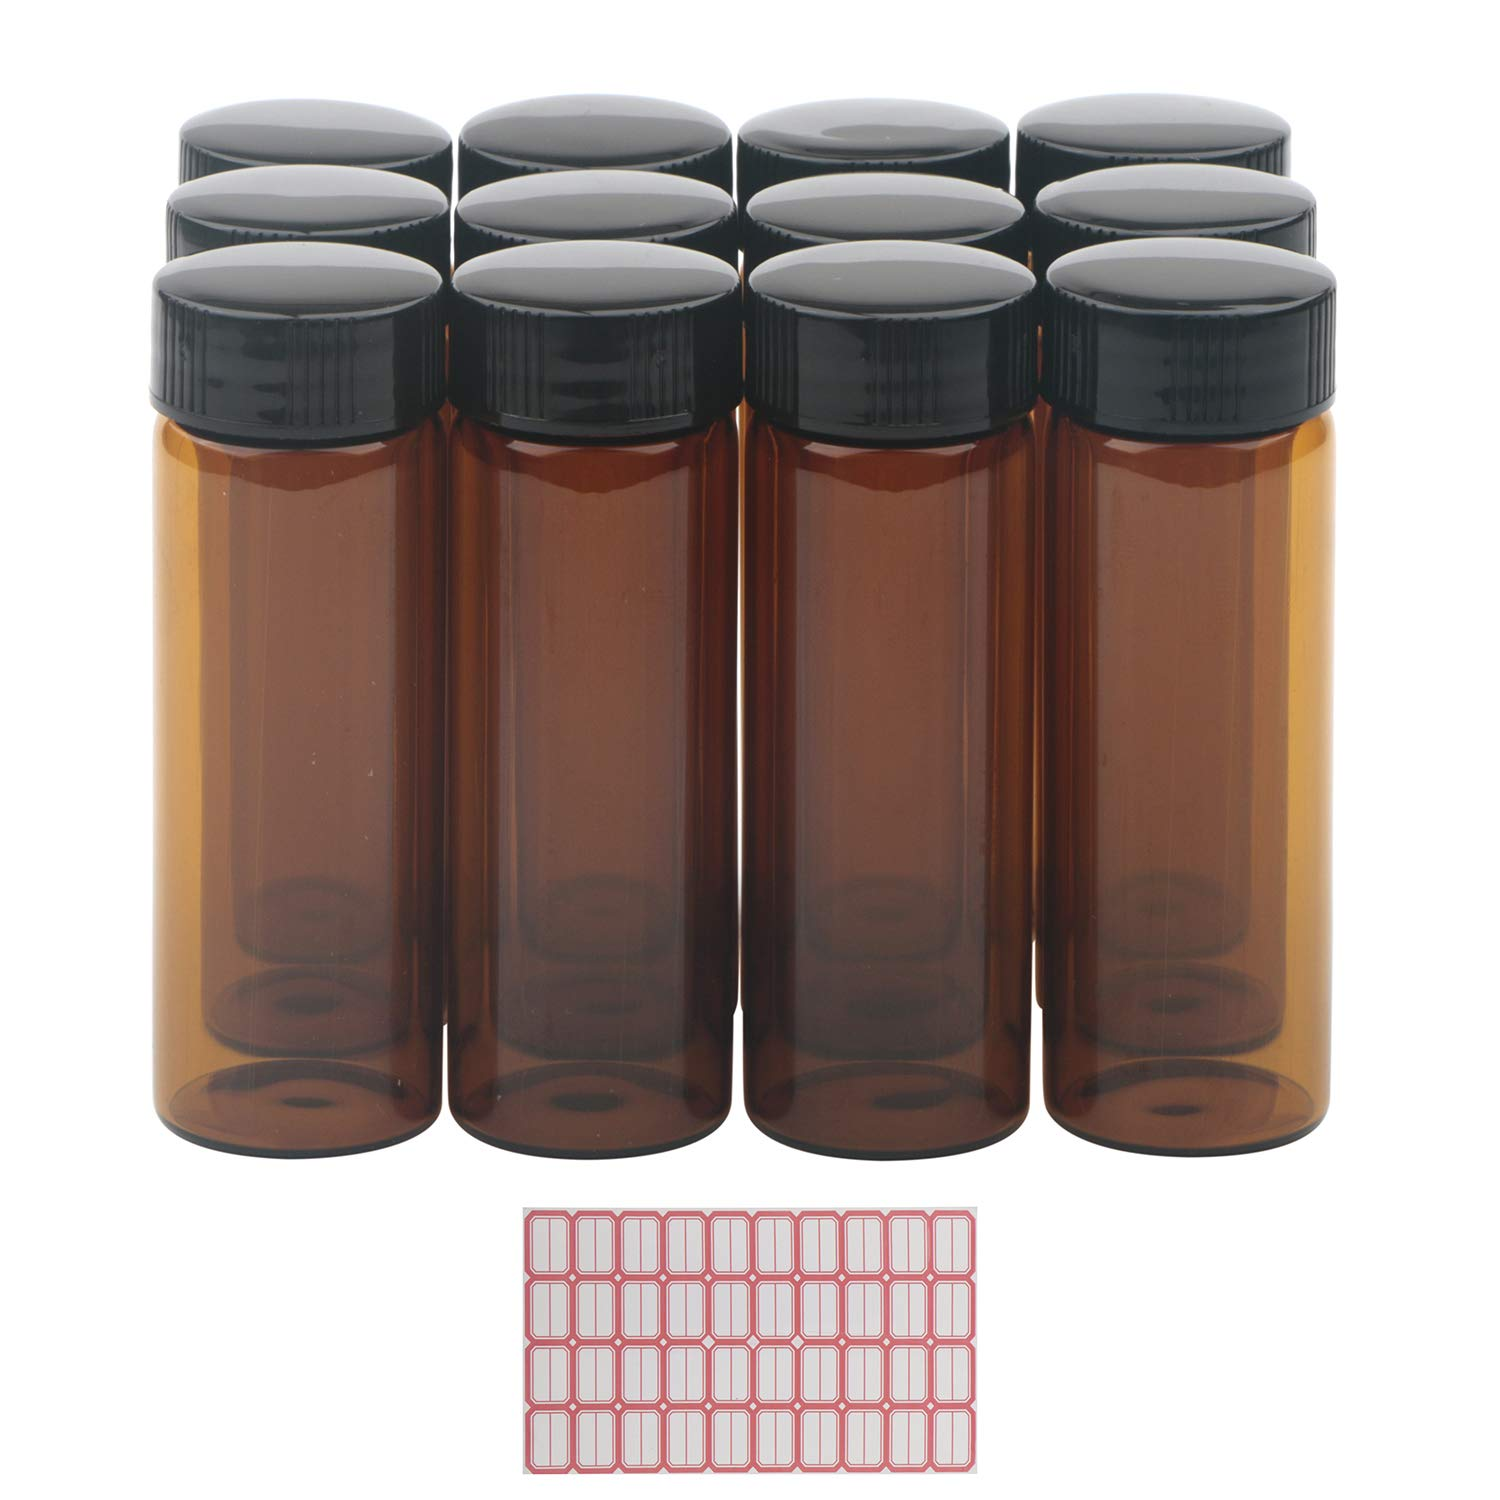 12Pcs 30ML Kesell Amber Brown Glass Bottle with Black Caps for Chemistry Lab Chemicals, Perfume Oils, Reagent, and Other Liquids (Comes with red Handwritten Sticker Paper)